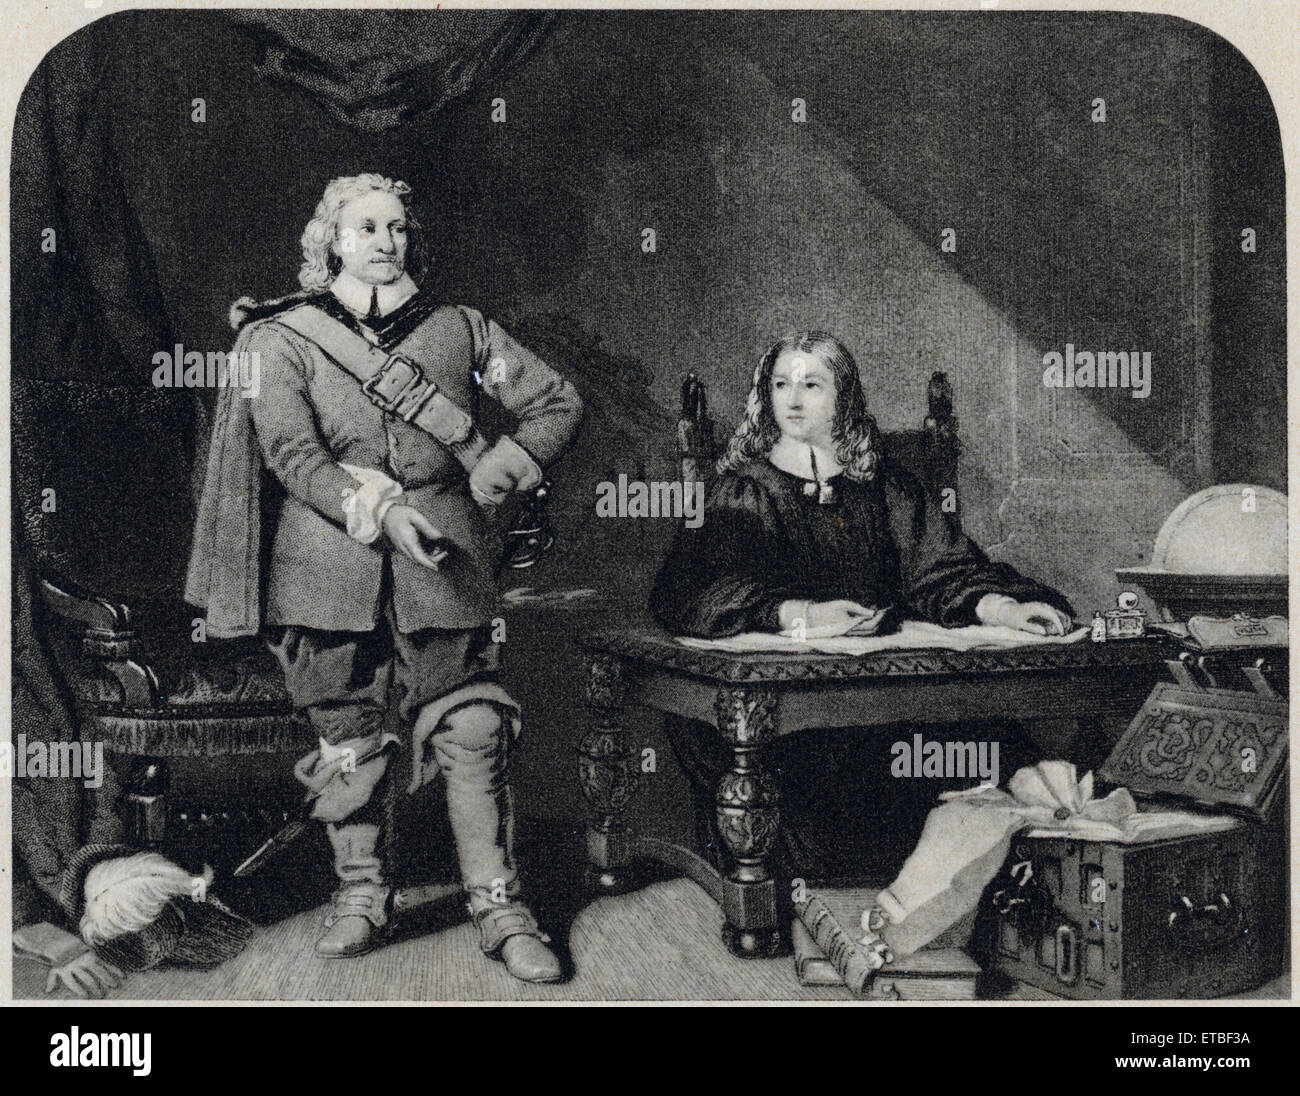 Oliver Cromwell Dictating to John Milton, Letter to the Duke of Savoy to Stop the Persecution of the Protestants - Stock Image